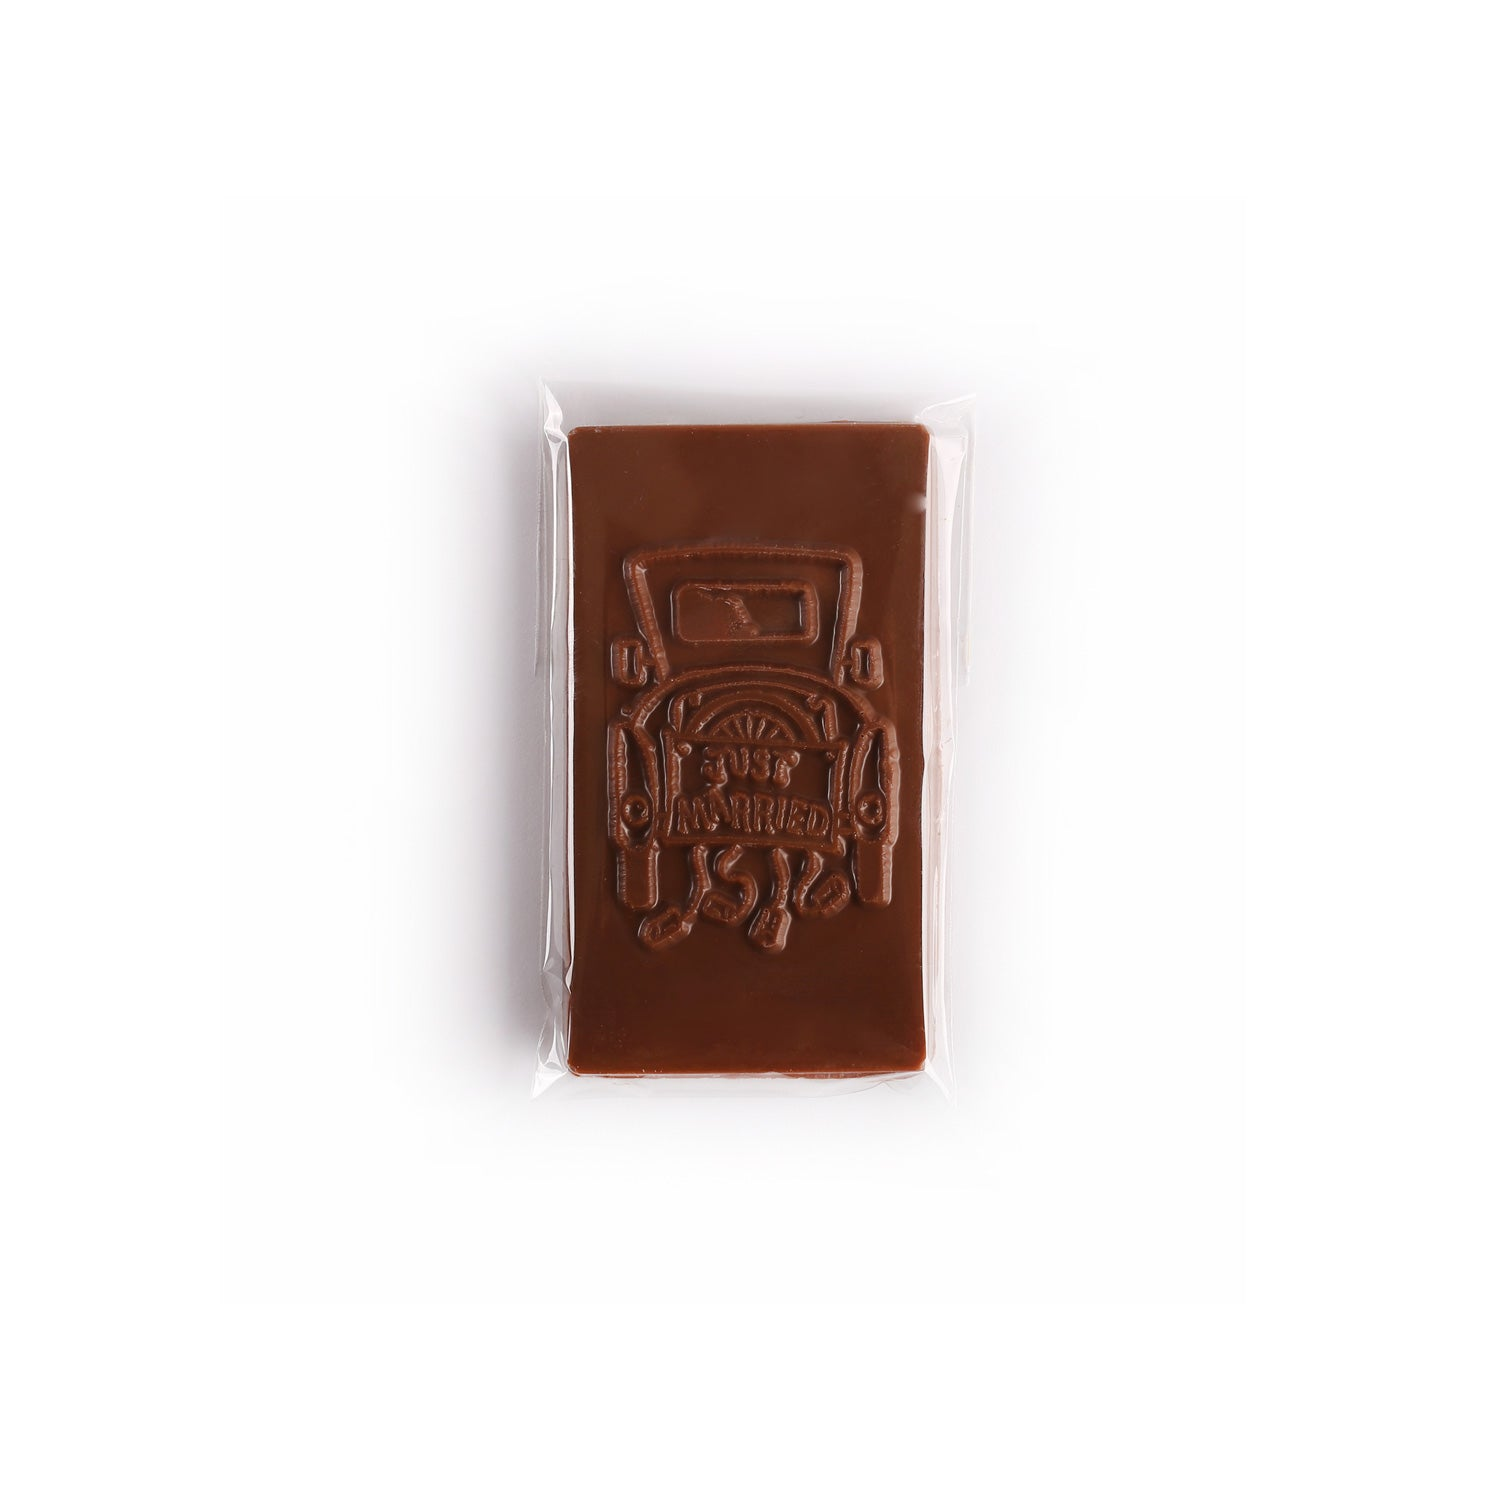 Product photo of just married bar. Chocolate molding is of the back of a car.